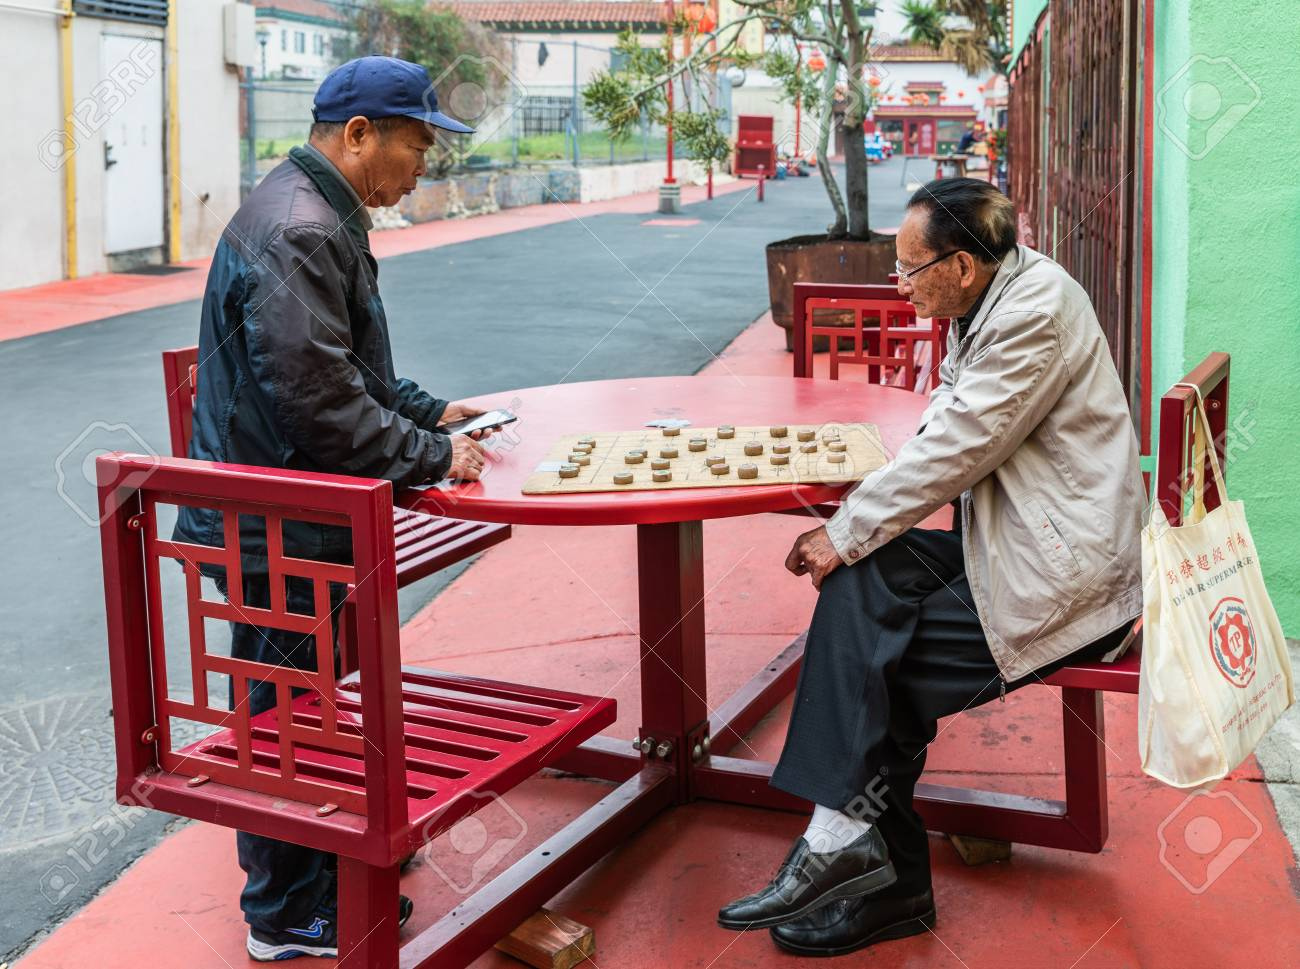 Los Angeles, CA, USA - April 5, 2018: Two senior men play Chinese